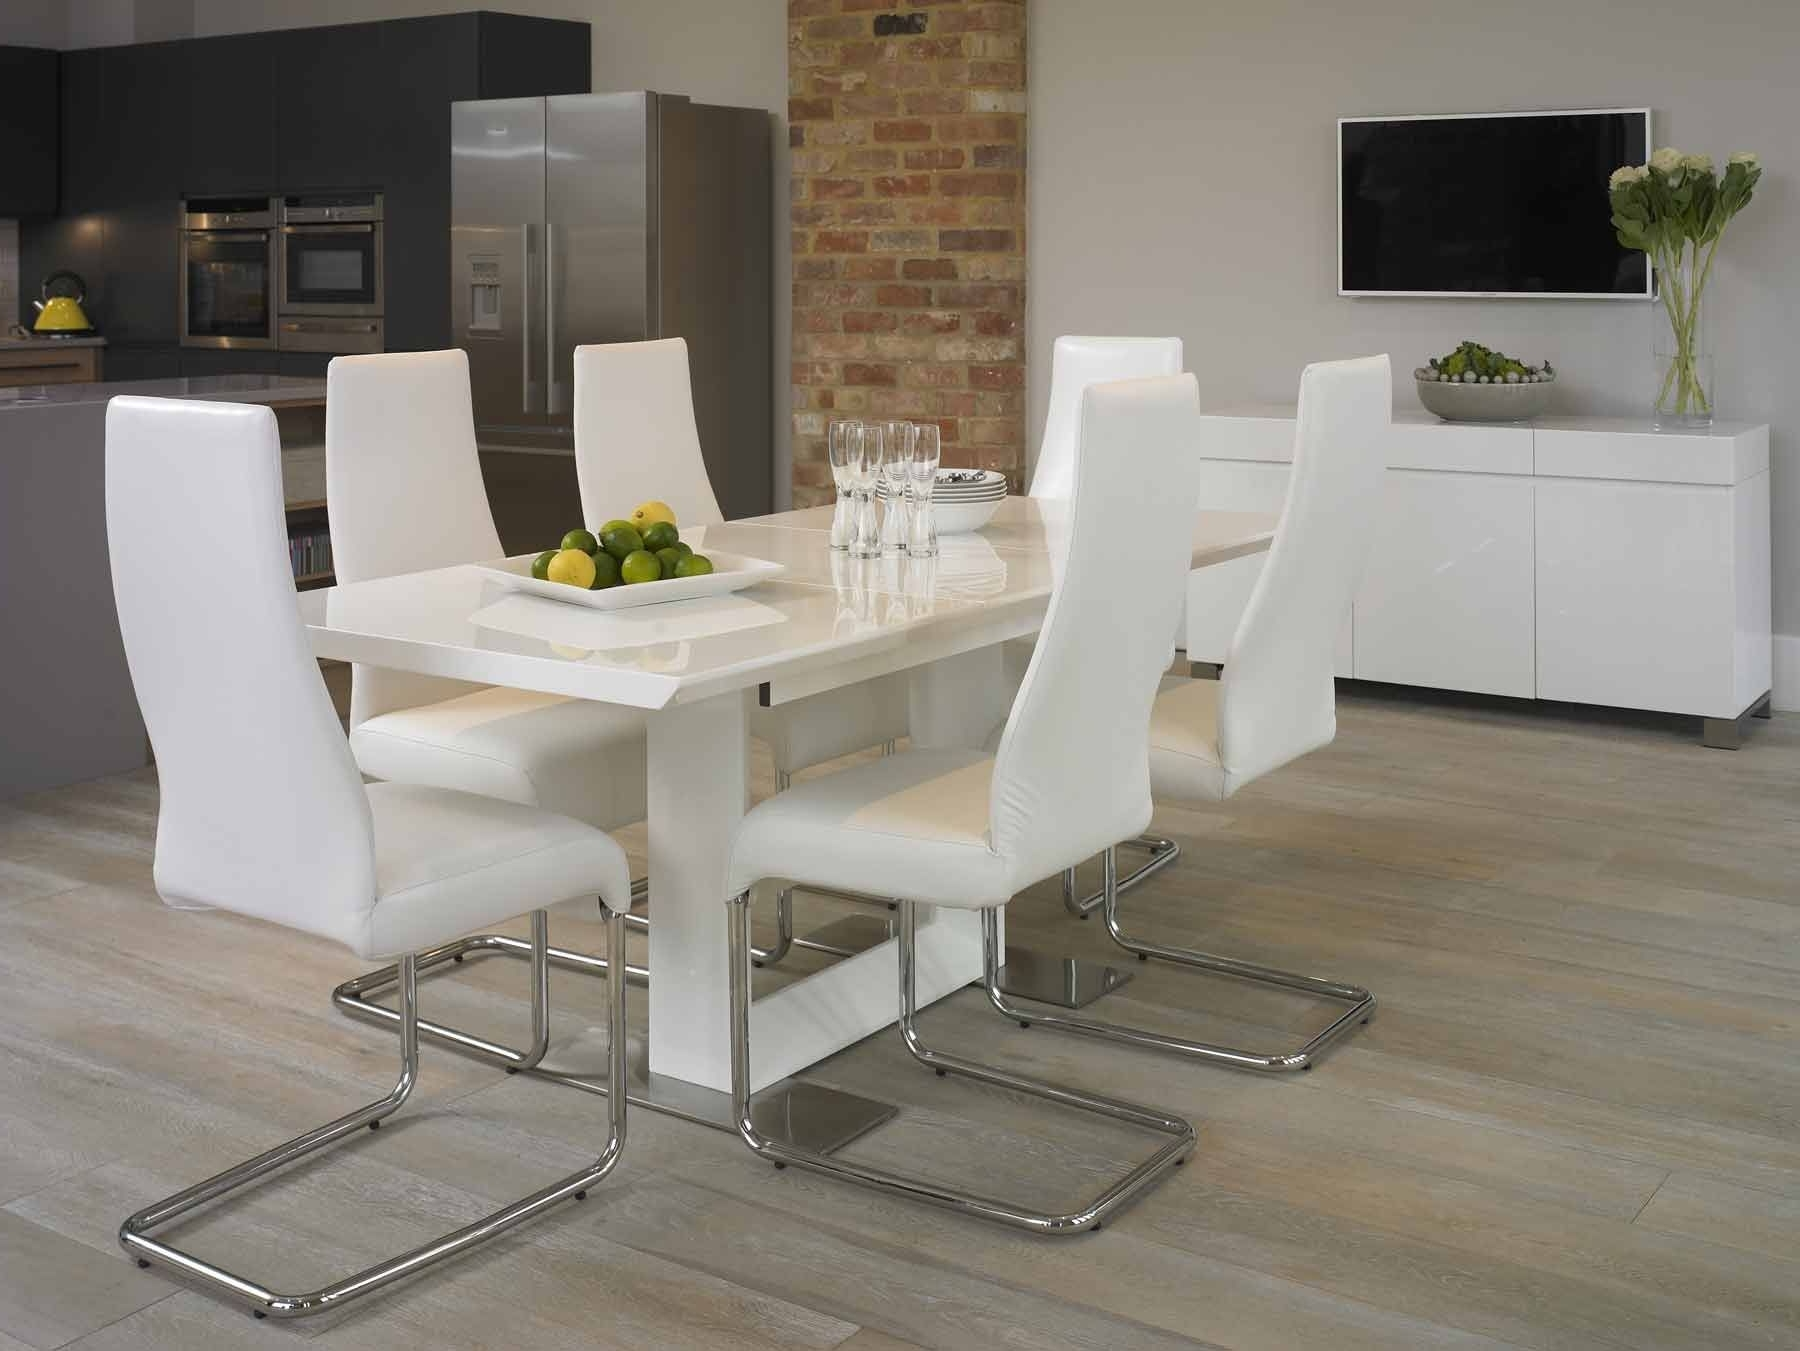 White Gloss Dining Tables Sets With Regard To 2018 White Gloss Dining Table Harlequin White High Gloss X (View 21 of 25)